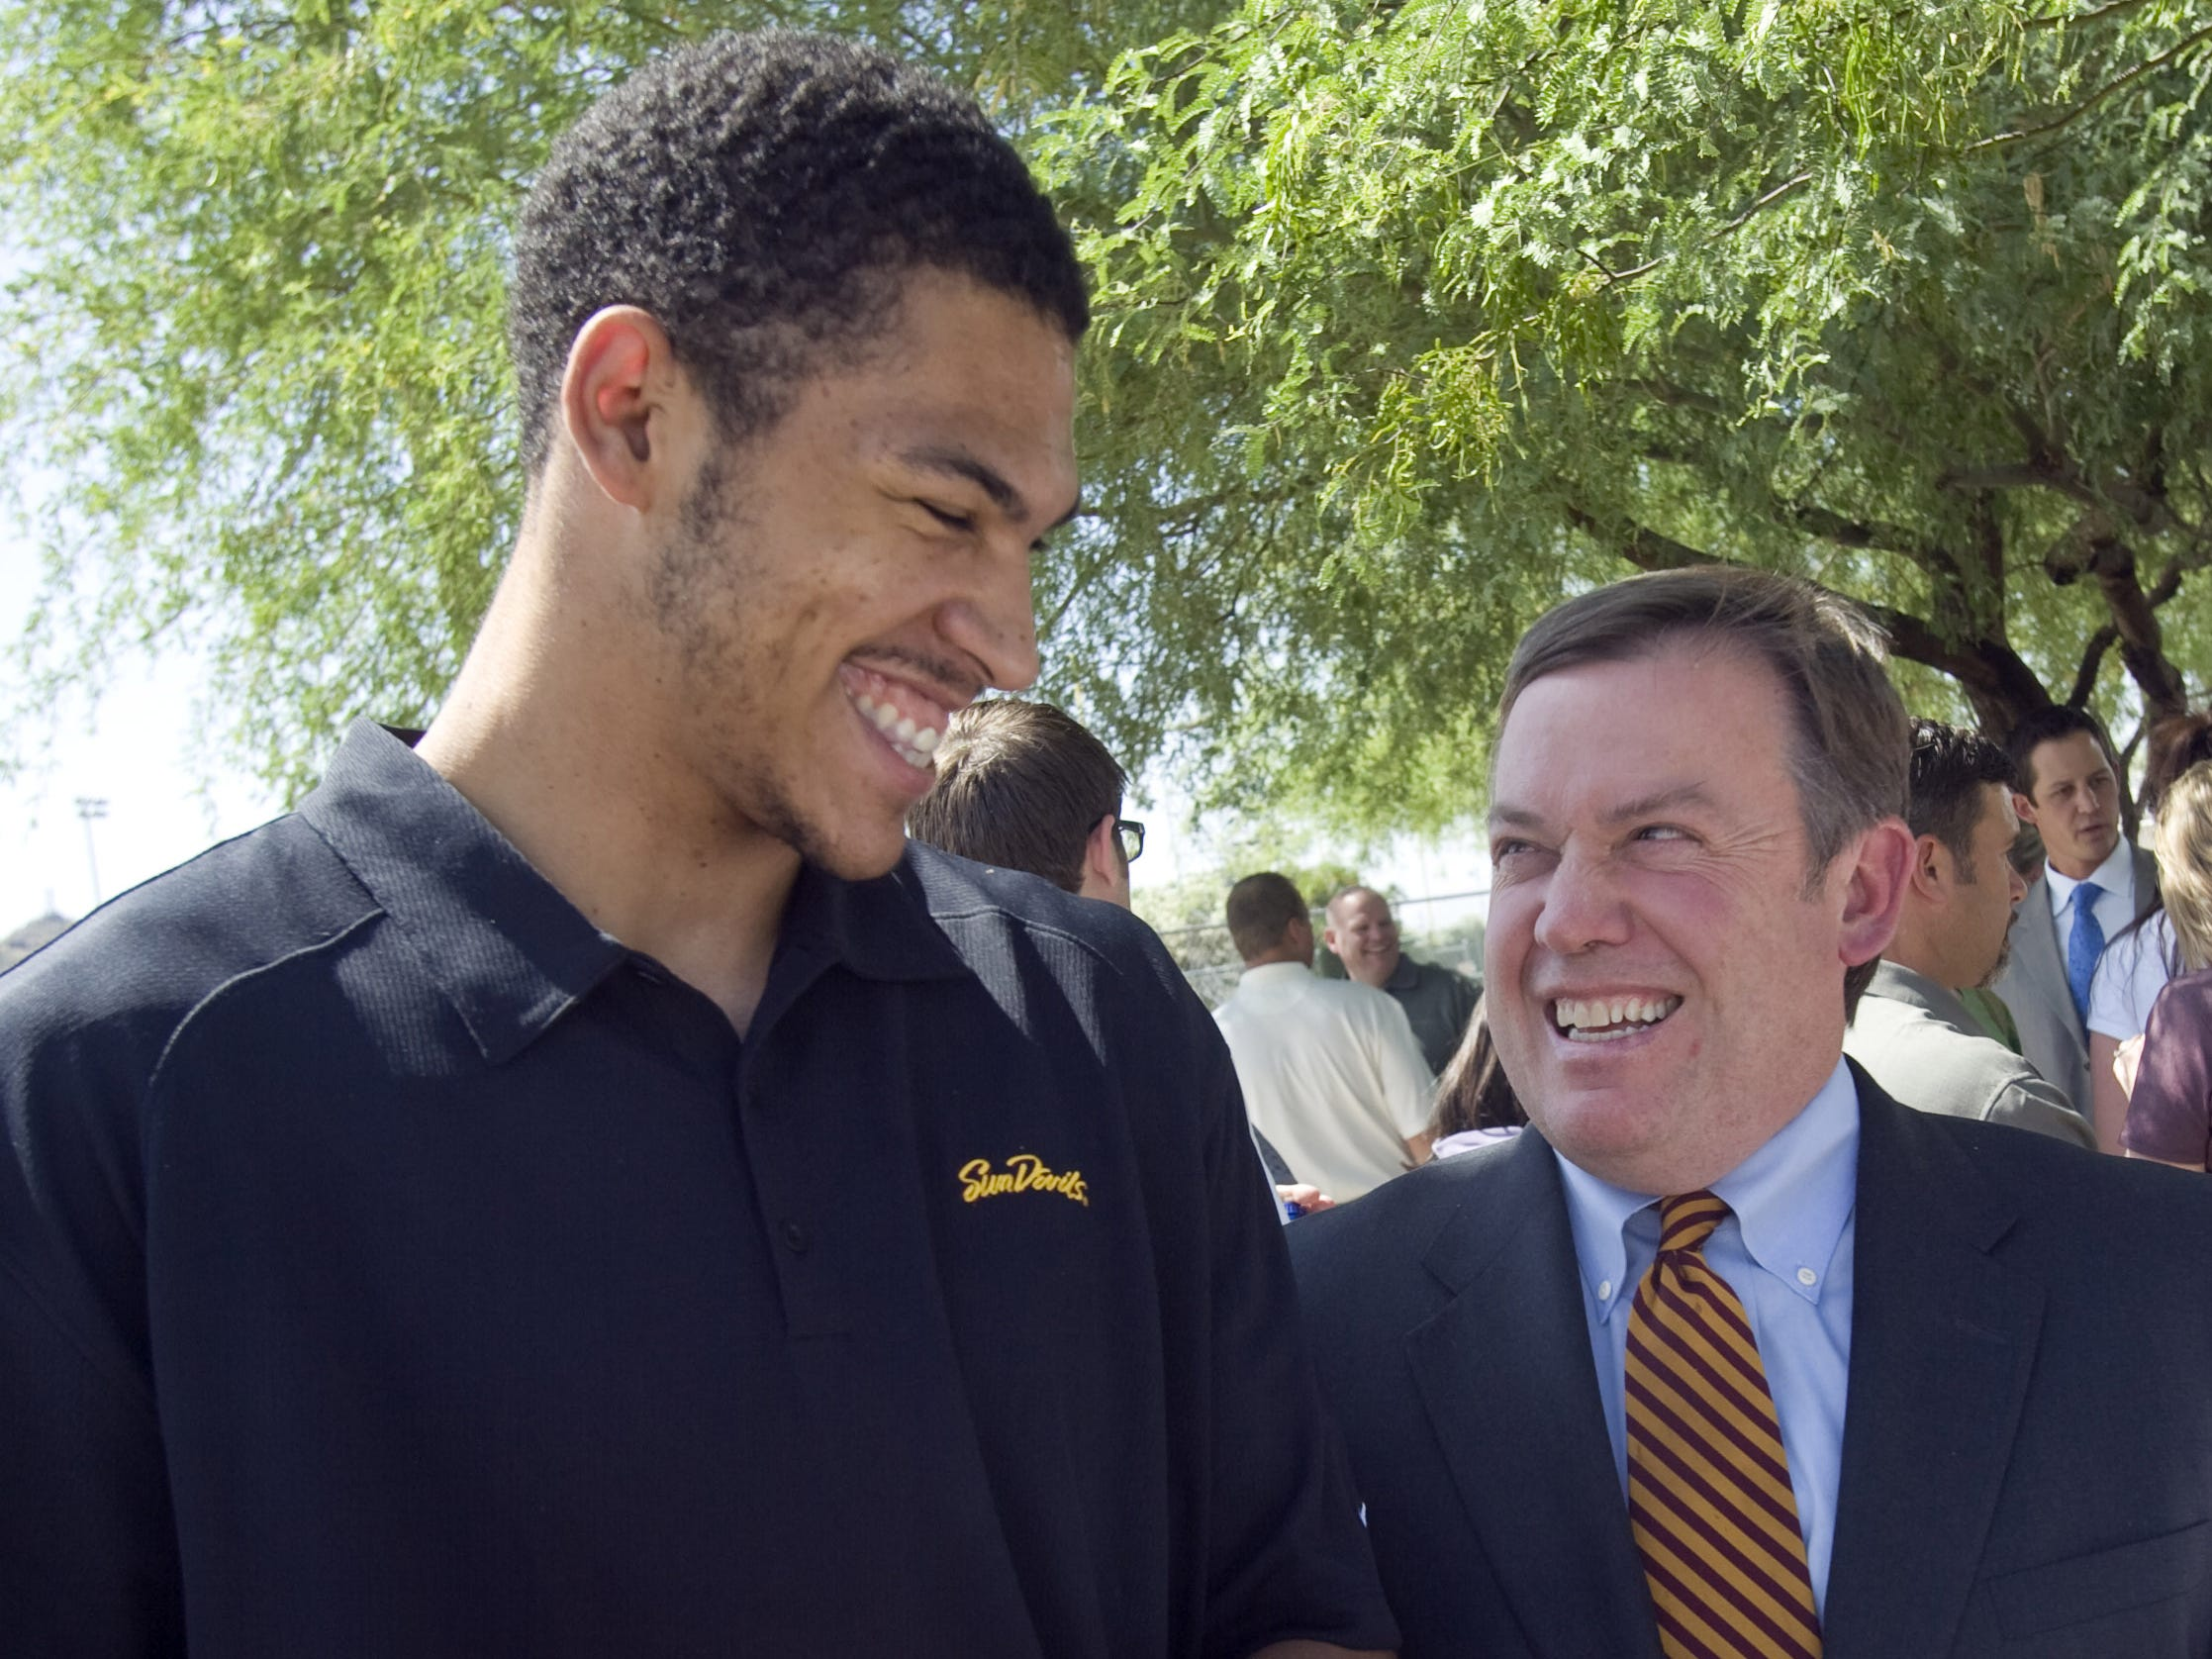 Former ASU basketball player Jeff Pendergraph (left) and ASU President Michael Crow share a laugh during the 2008 groundbreaking for the Weatherup Basketball Center at ASU's Tempe campus.